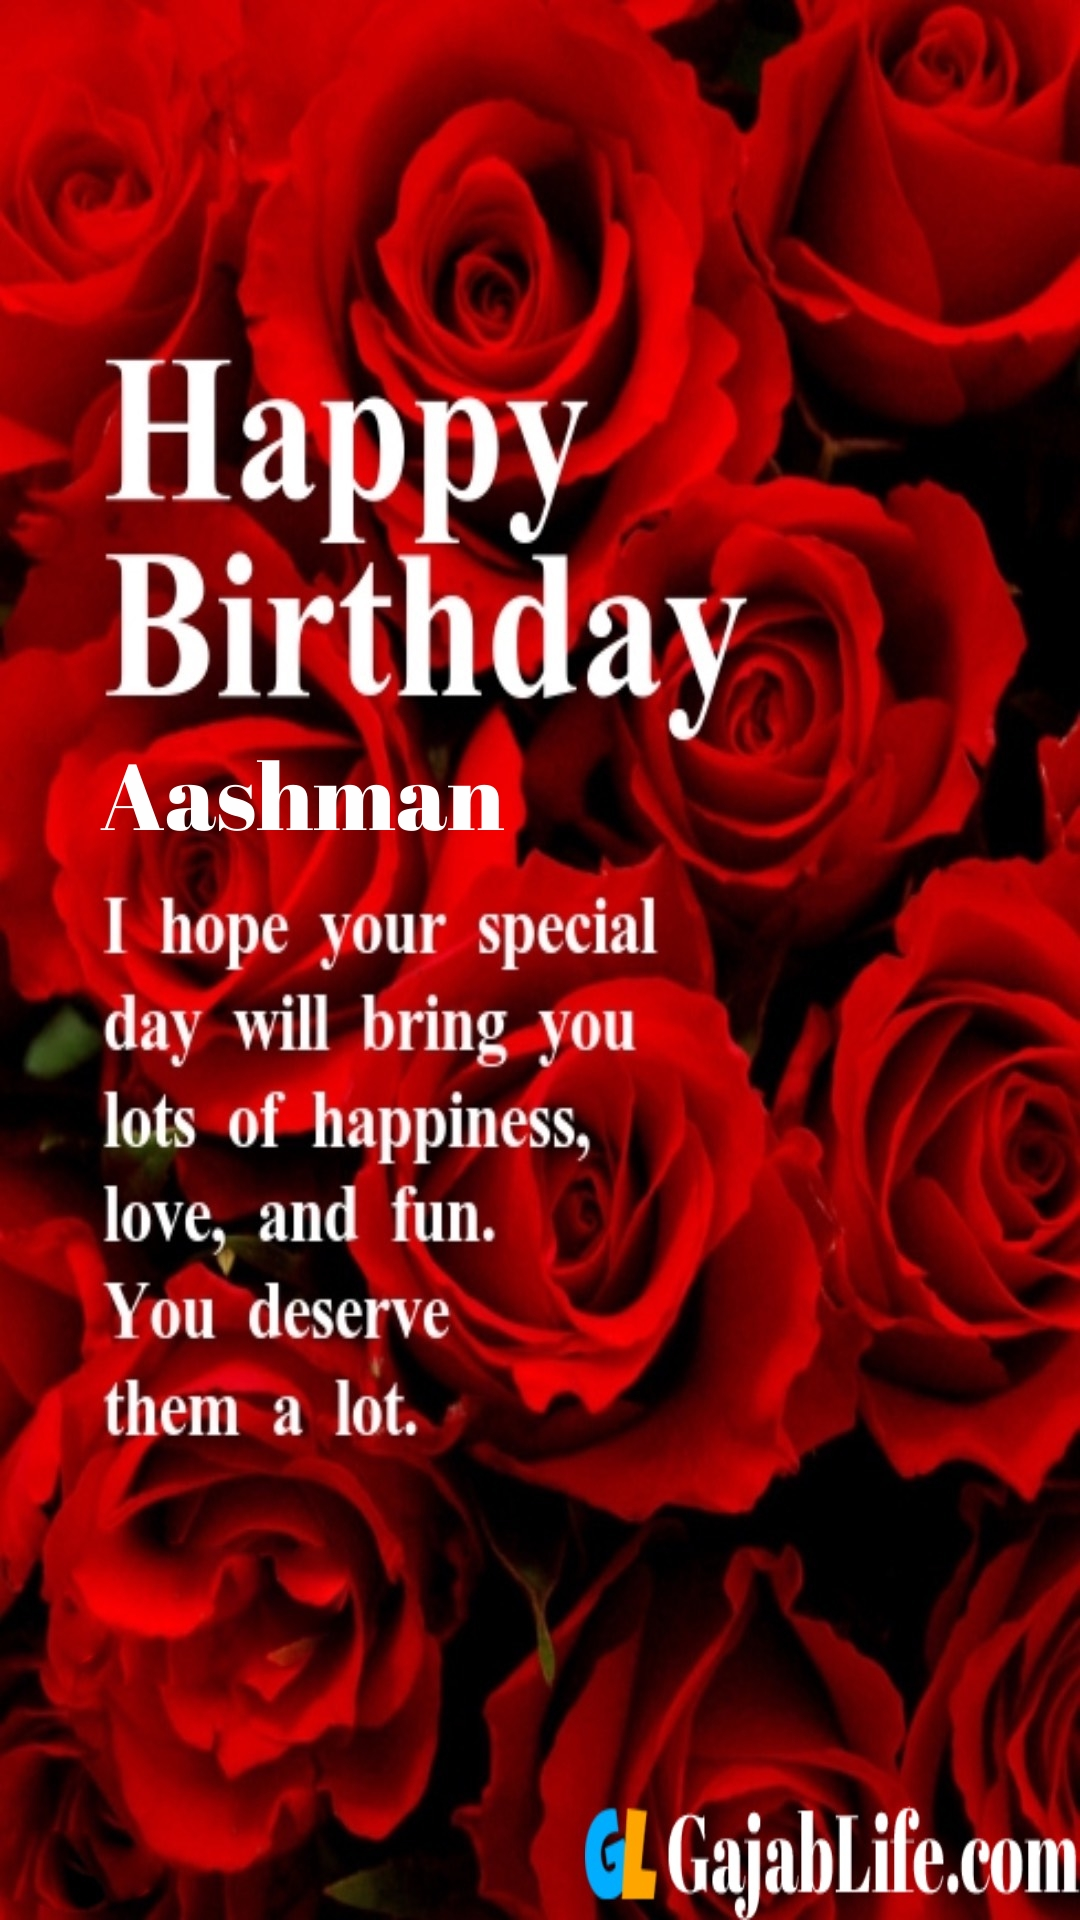 Aashman birthday greeting card with rose & love